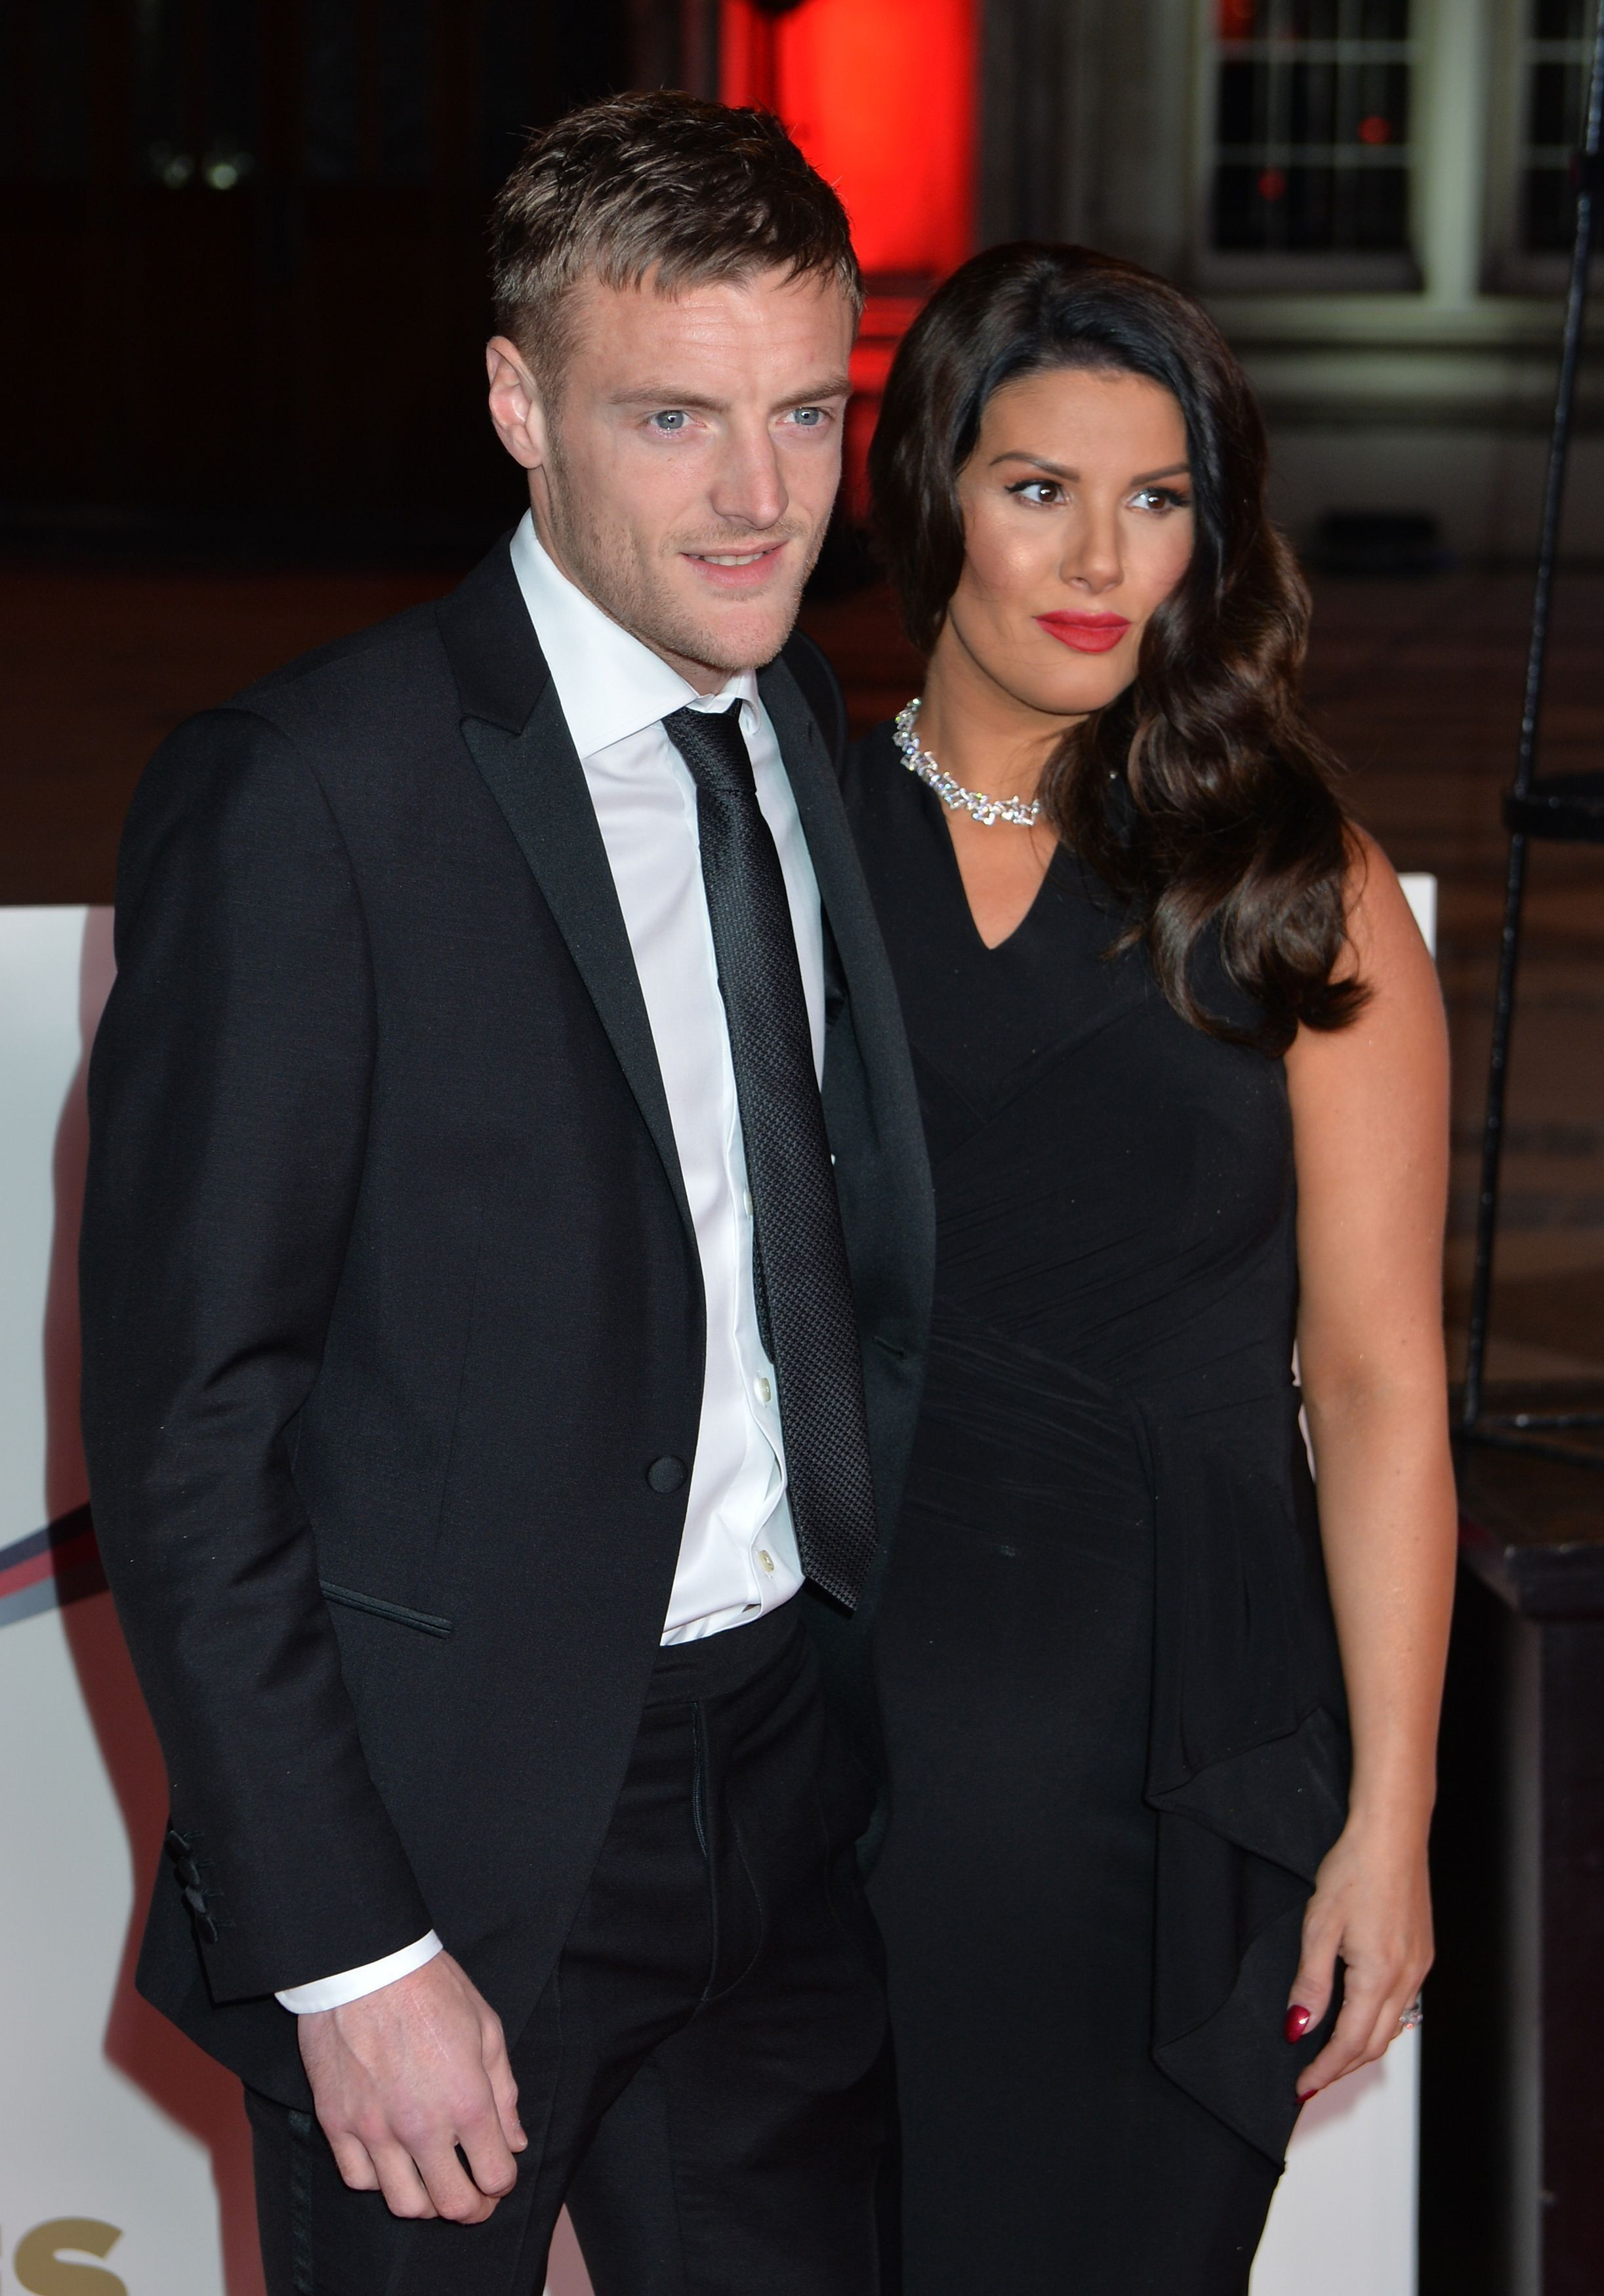 Rebekah Vardy 'In Talks' For One Of The UK's Biggest Reality